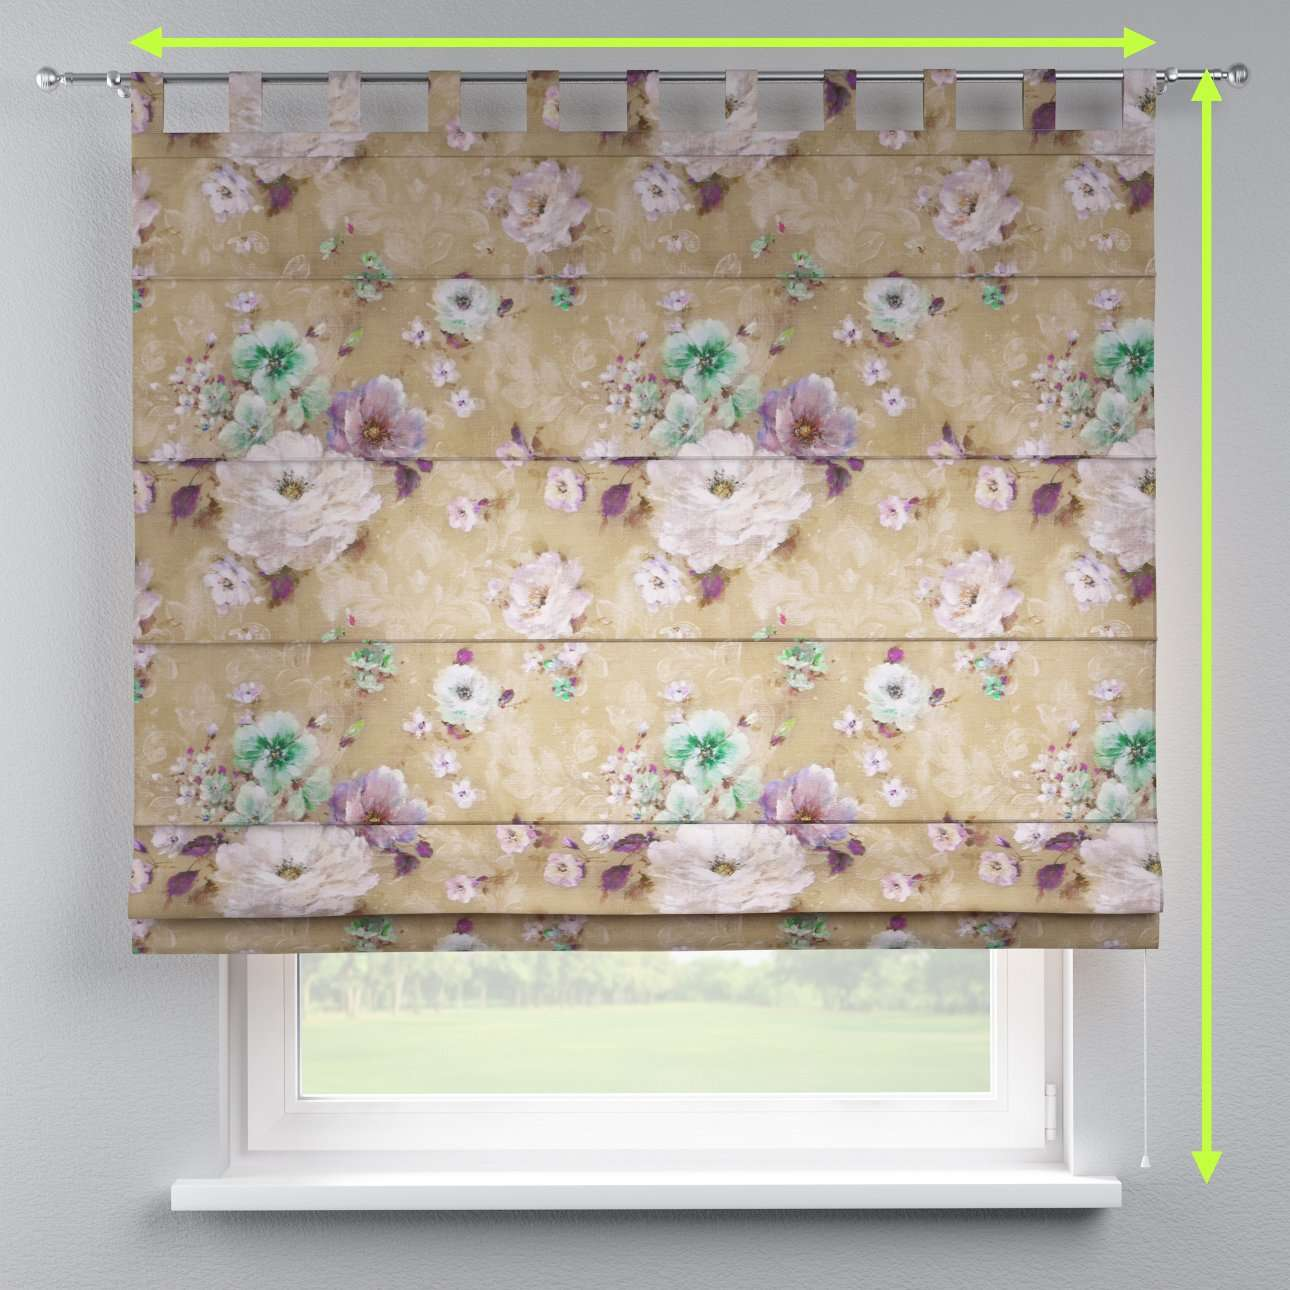 Verona tab top roman blind in collection Monet, fabric: 137-82